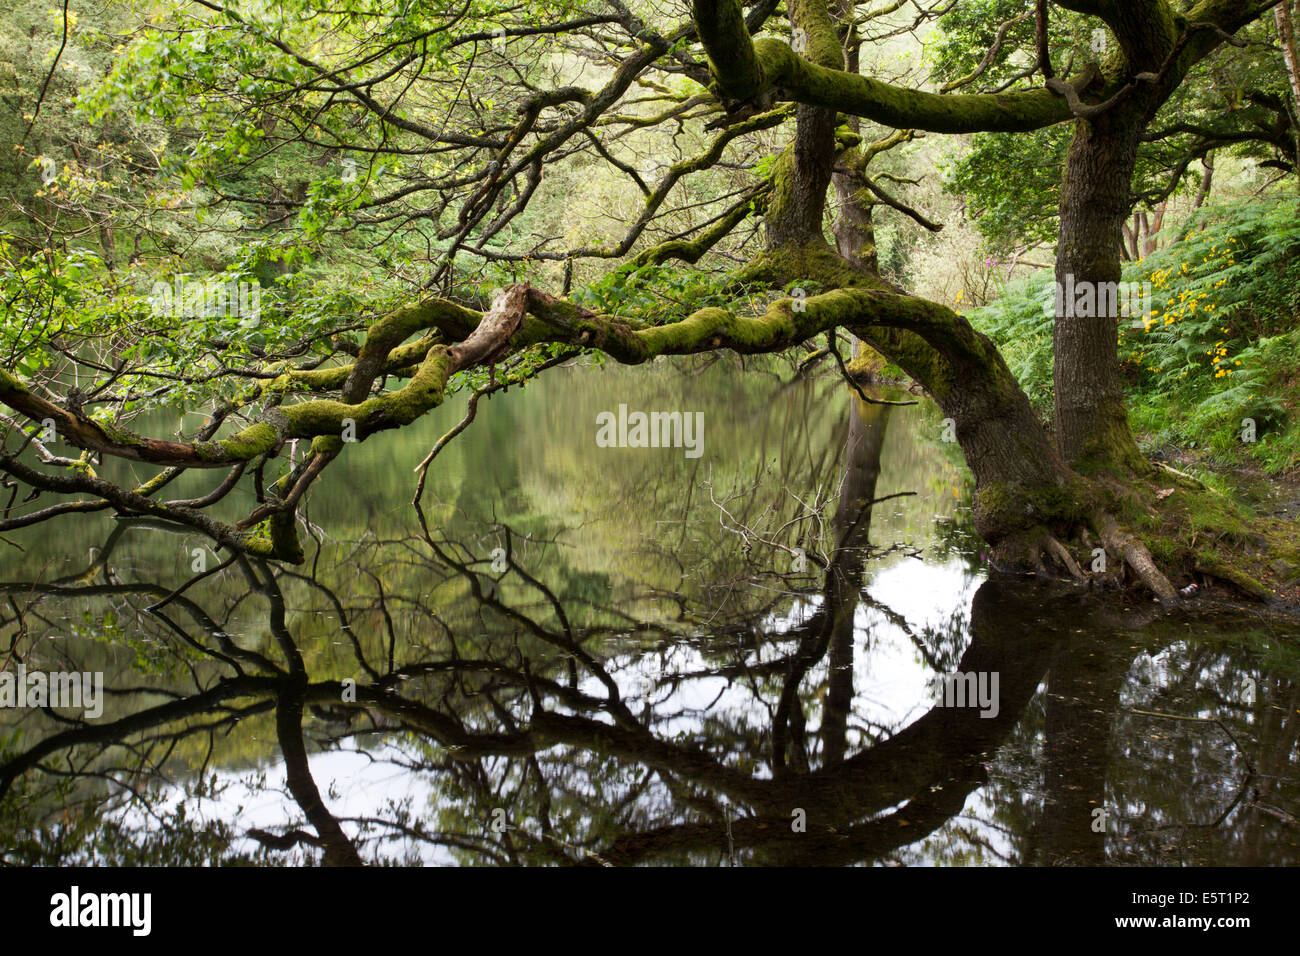 Alberi a sbalzo a Guisecliff Tarn ponte Pateley North Yorkshire, Inghilterra Immagini Stock